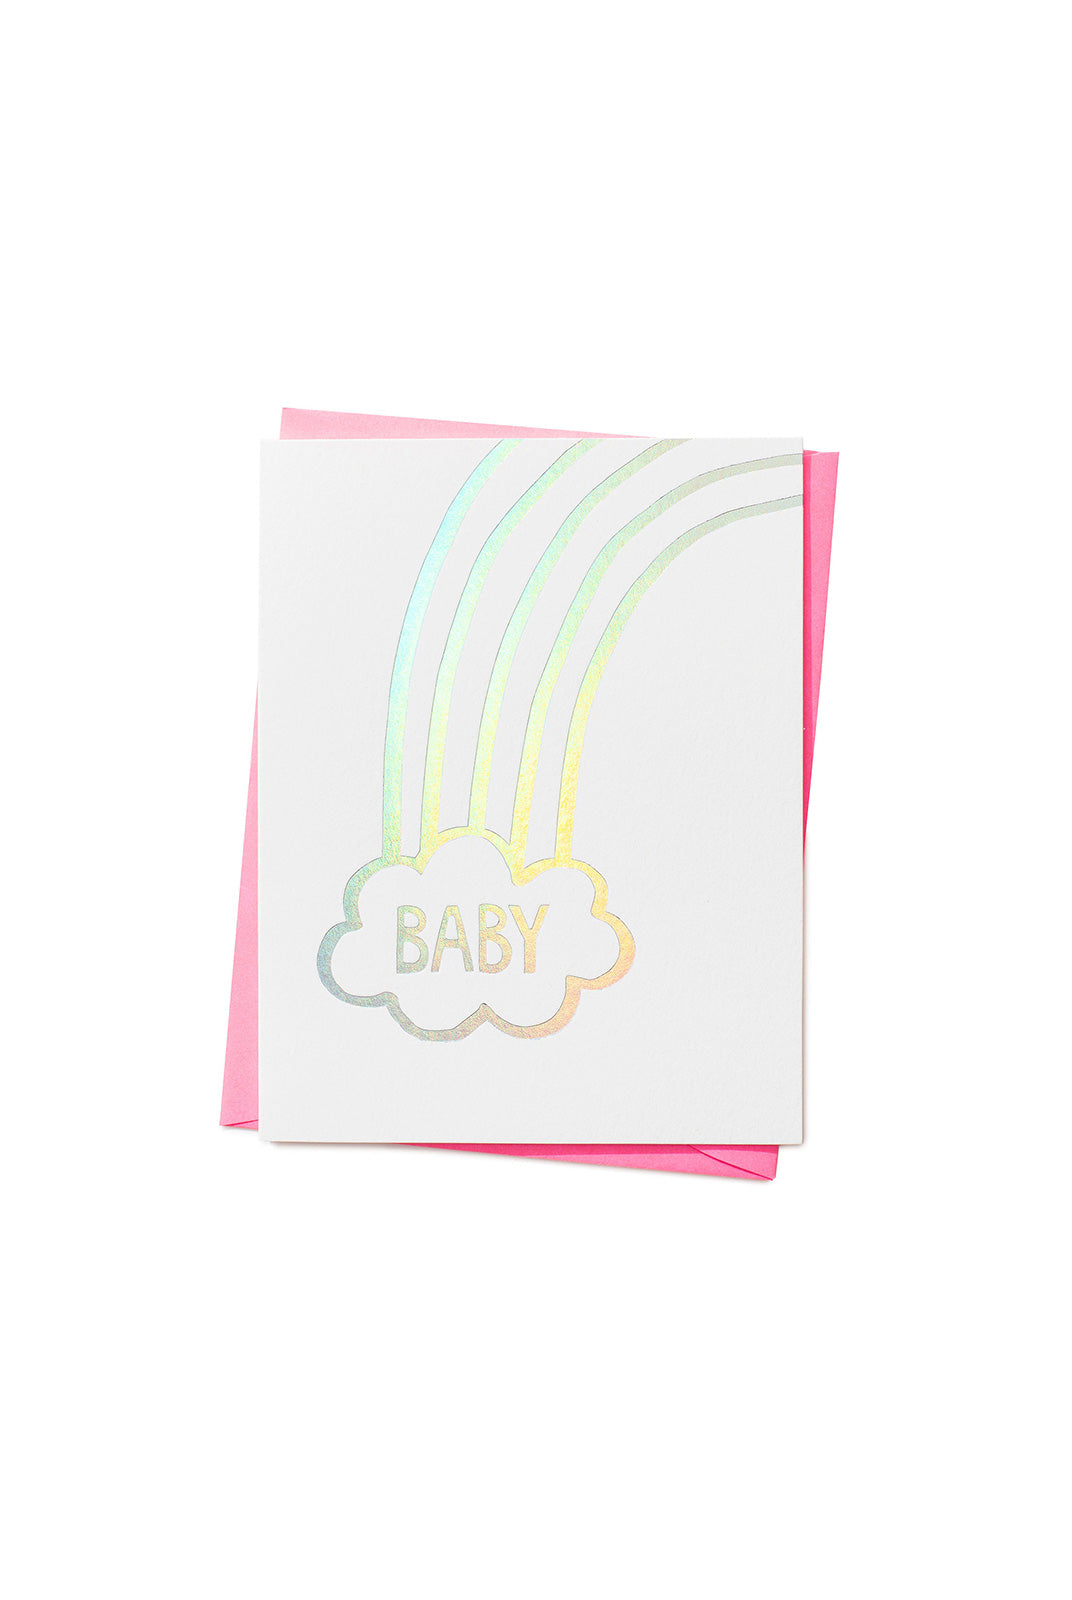 Ashkahn - Single Card - Rainbow Baby